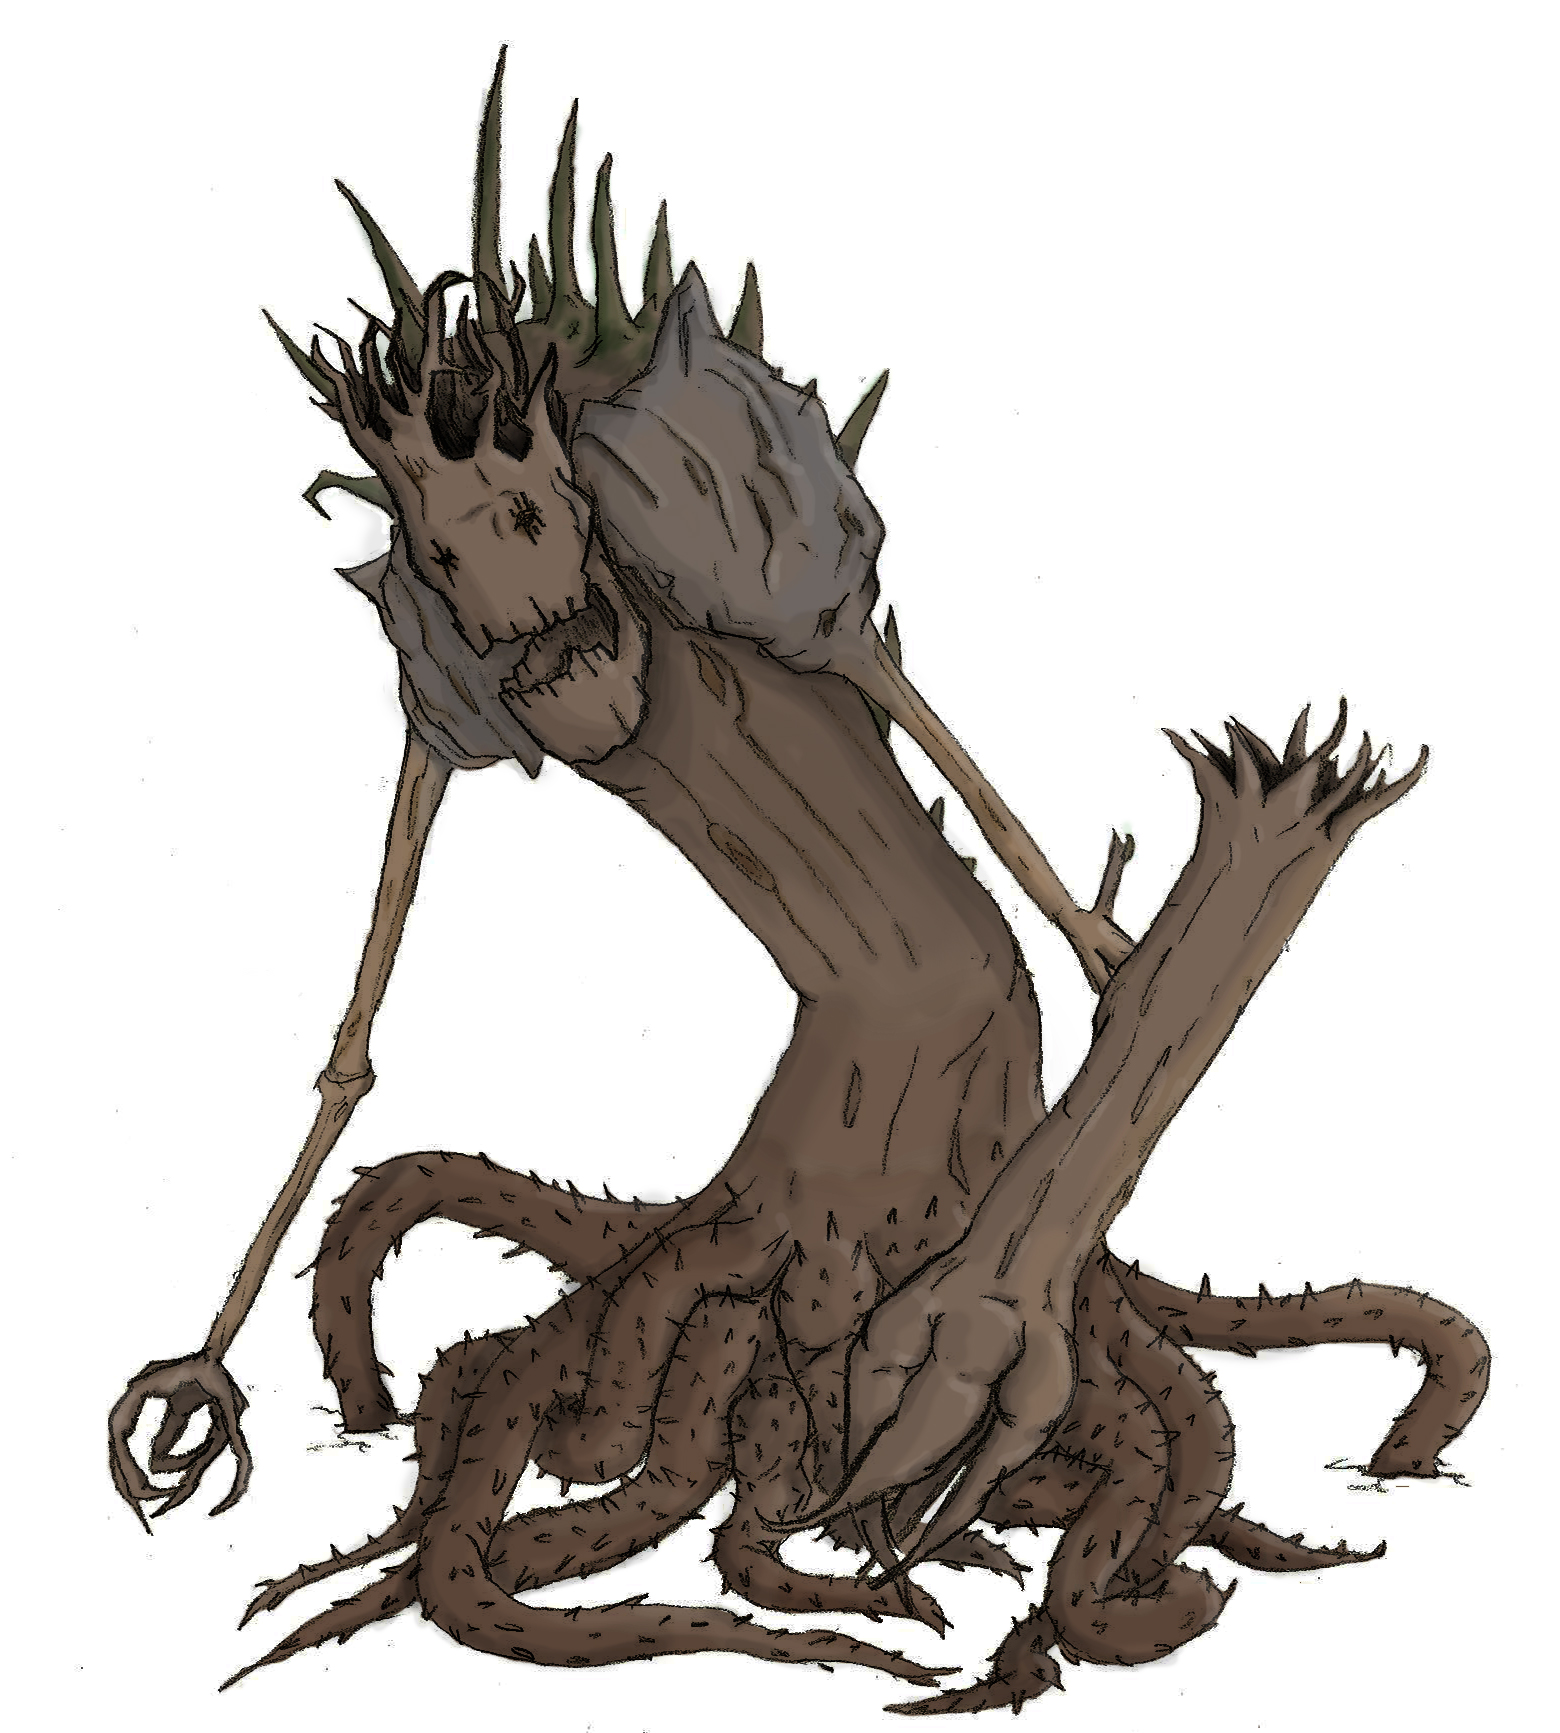 Tree Monster By Geocranium On Deviantart Free for commercial use no attribution required high quality images. tree monster by geocranium on deviantart